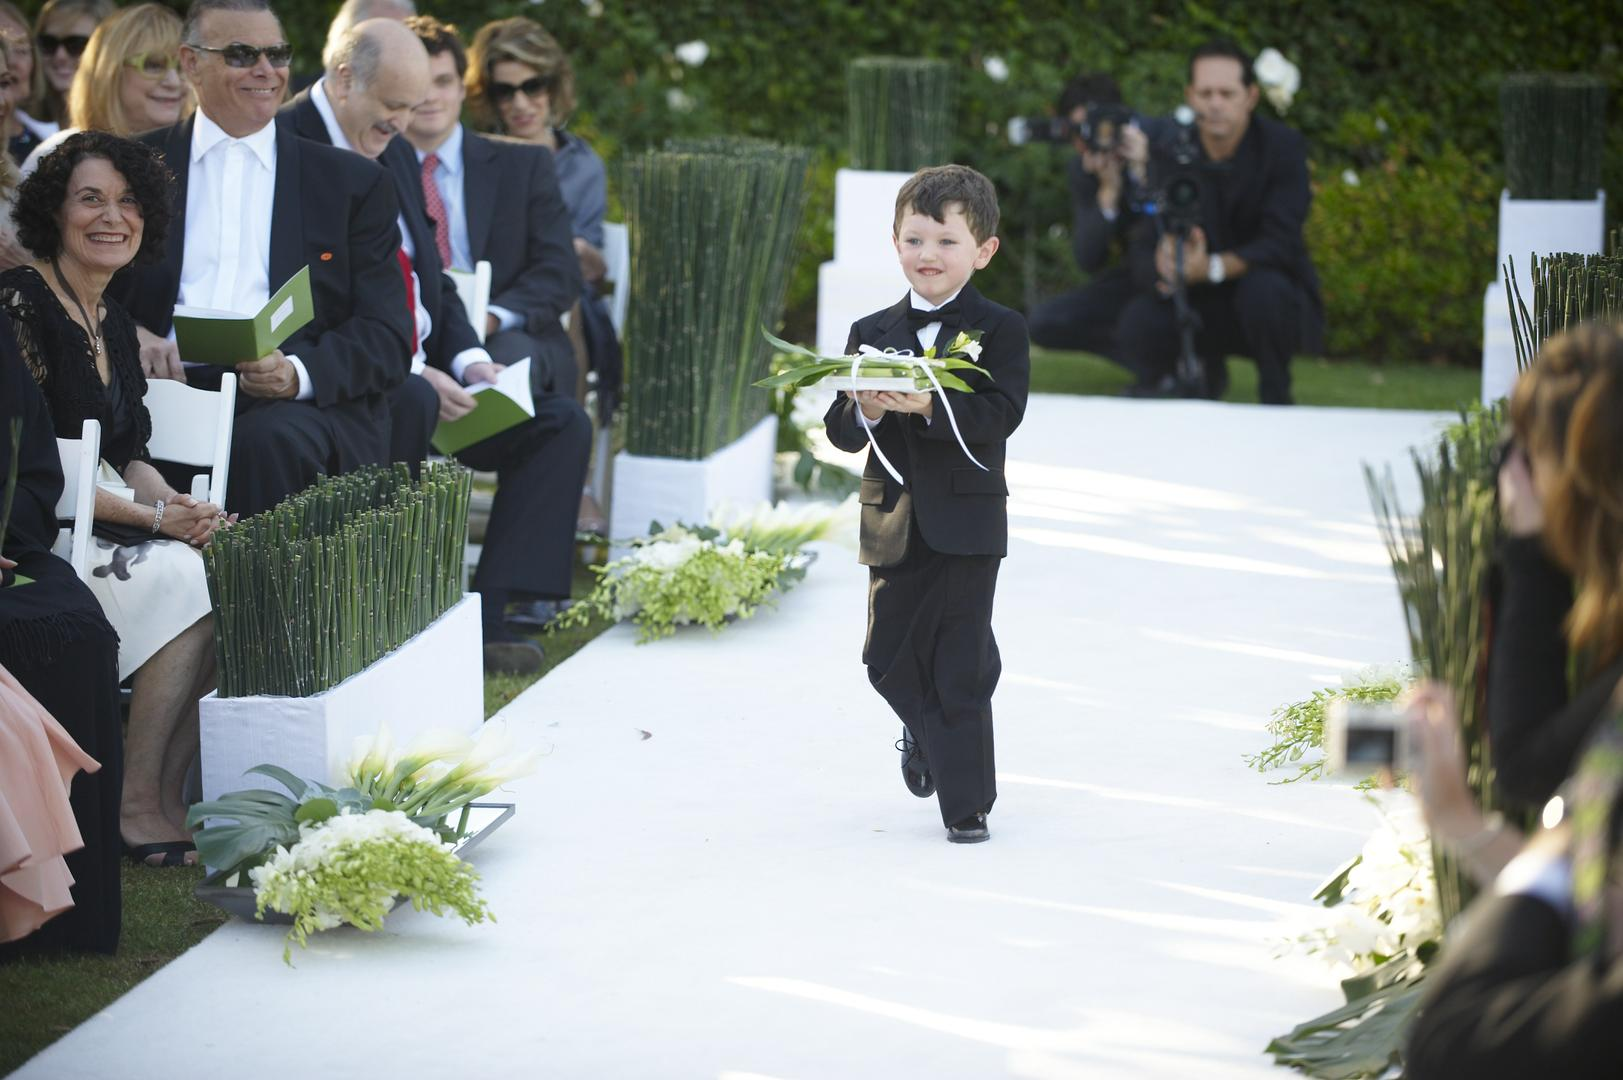 How Many Ring Bearers